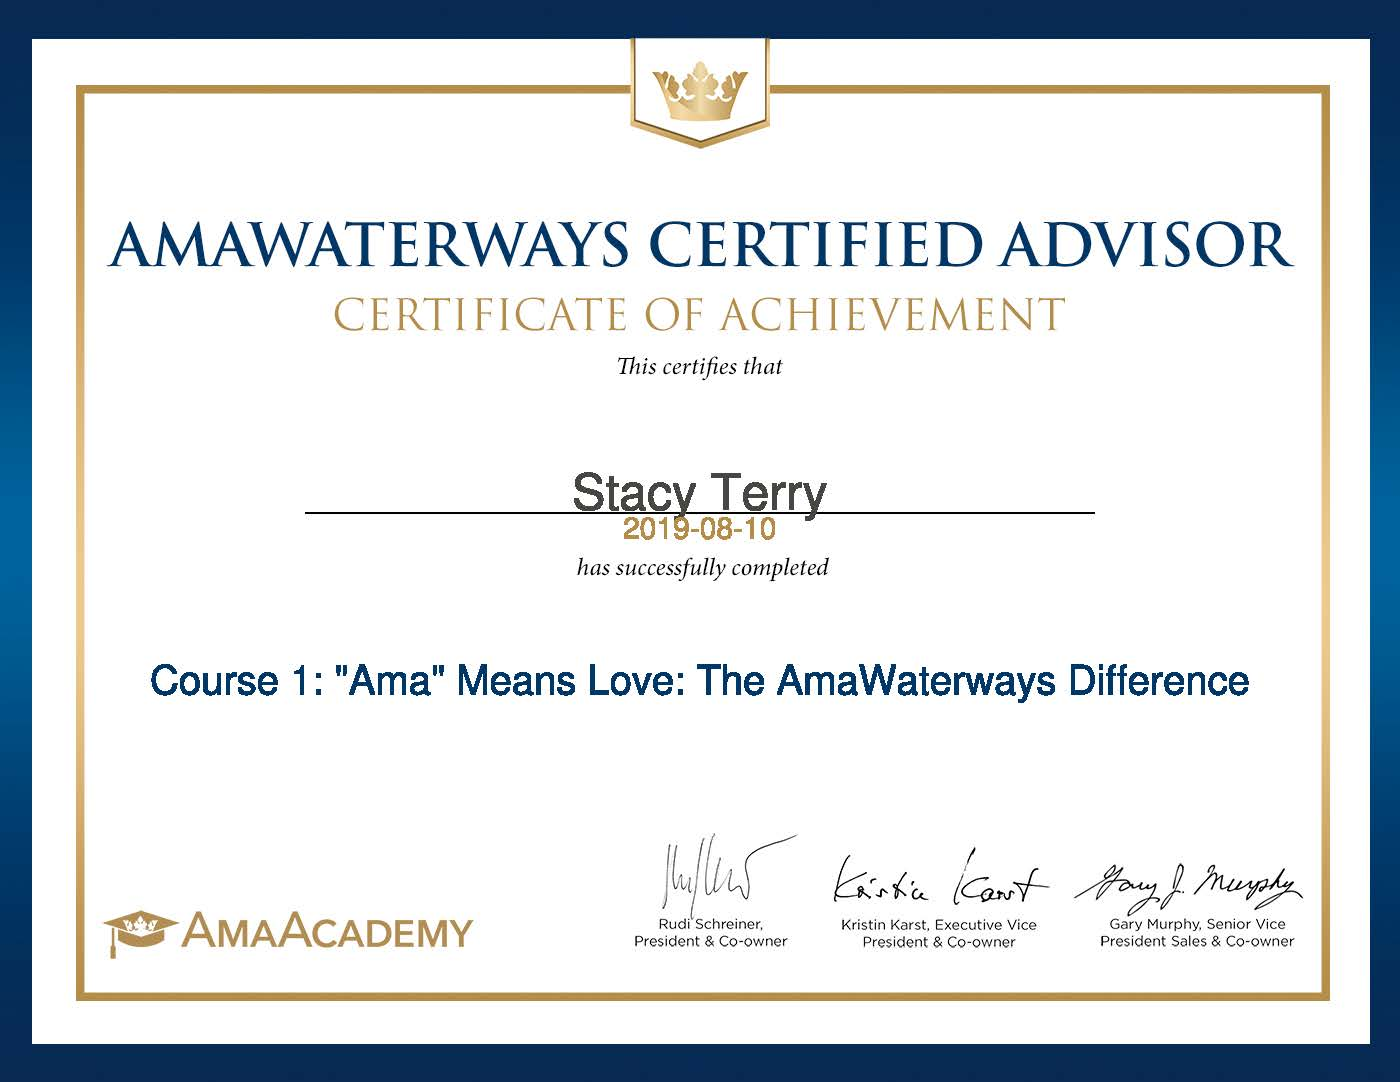 Stacy-Terry-Course 1_ _Ama_ Means Love_ The AmaWaterways Difference-Certificate.jpg